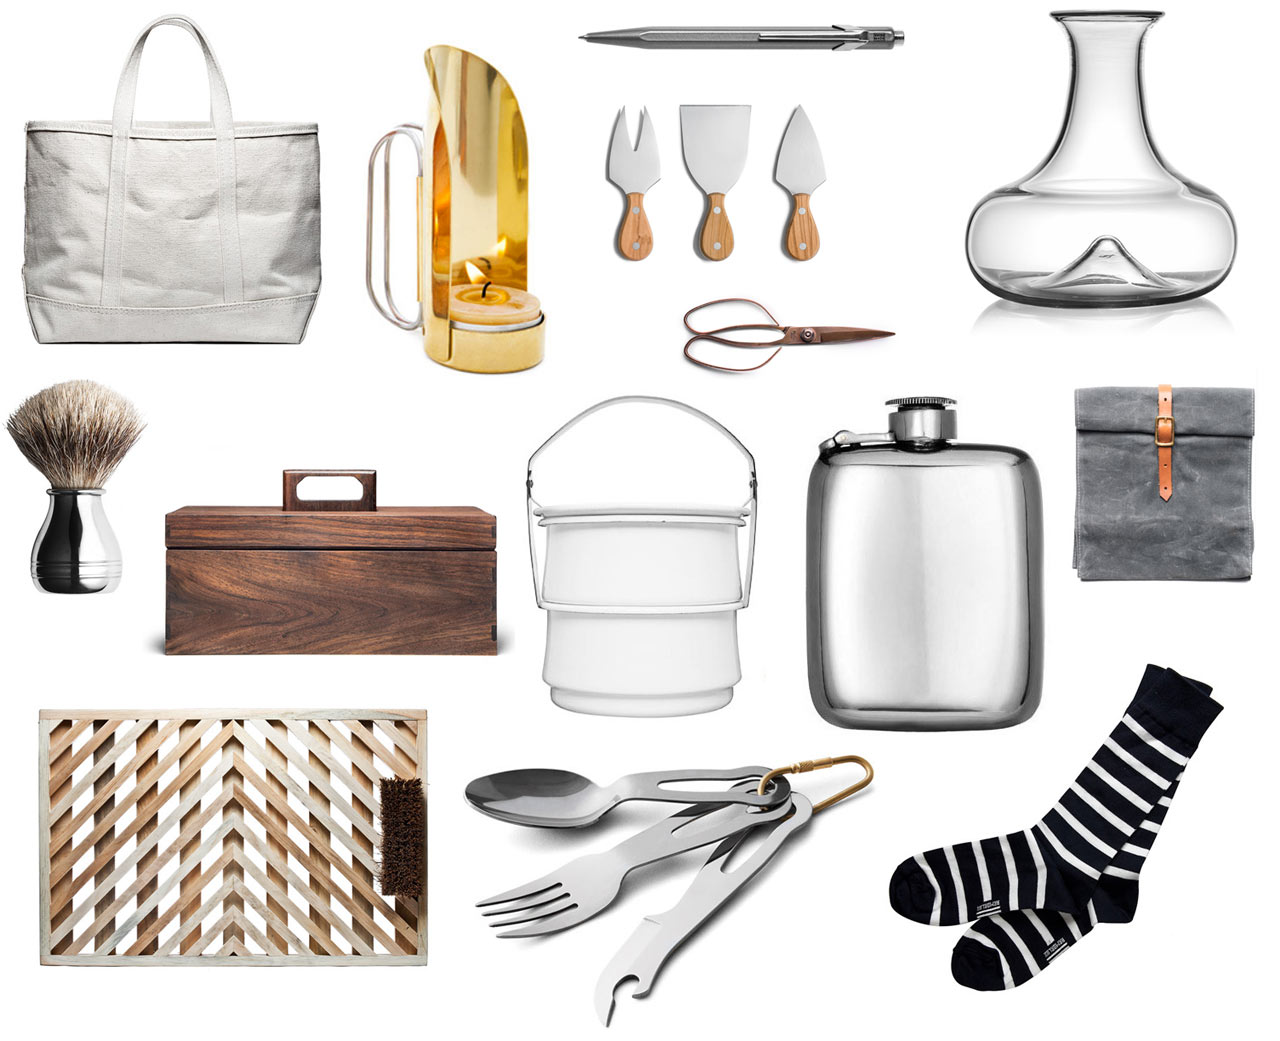 Win A $250 Gift Card For Well-Designed Everyday Goods from Kaufmann Mercantile